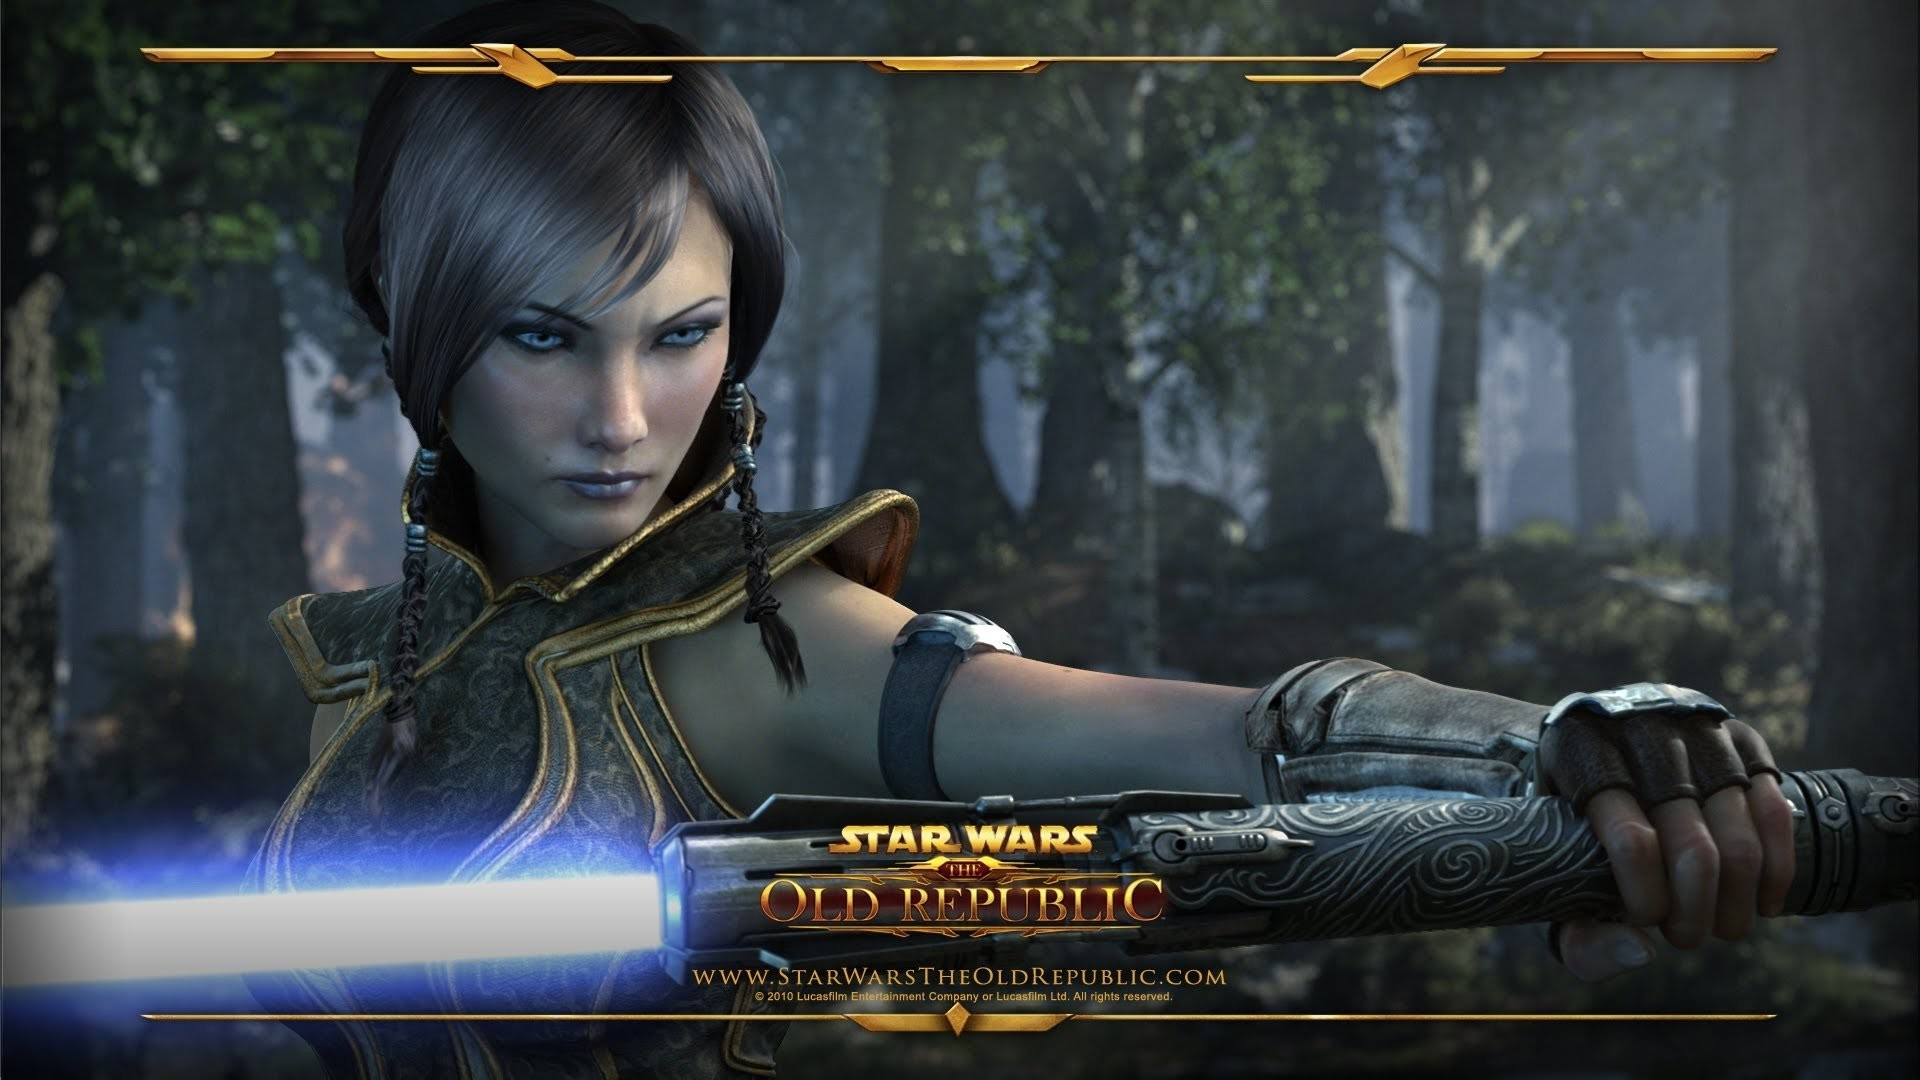 STAR WARS OLD REPUBLIC mmo rpg swtor fighting sci-fi wallpaper      518951   WallpaperUP